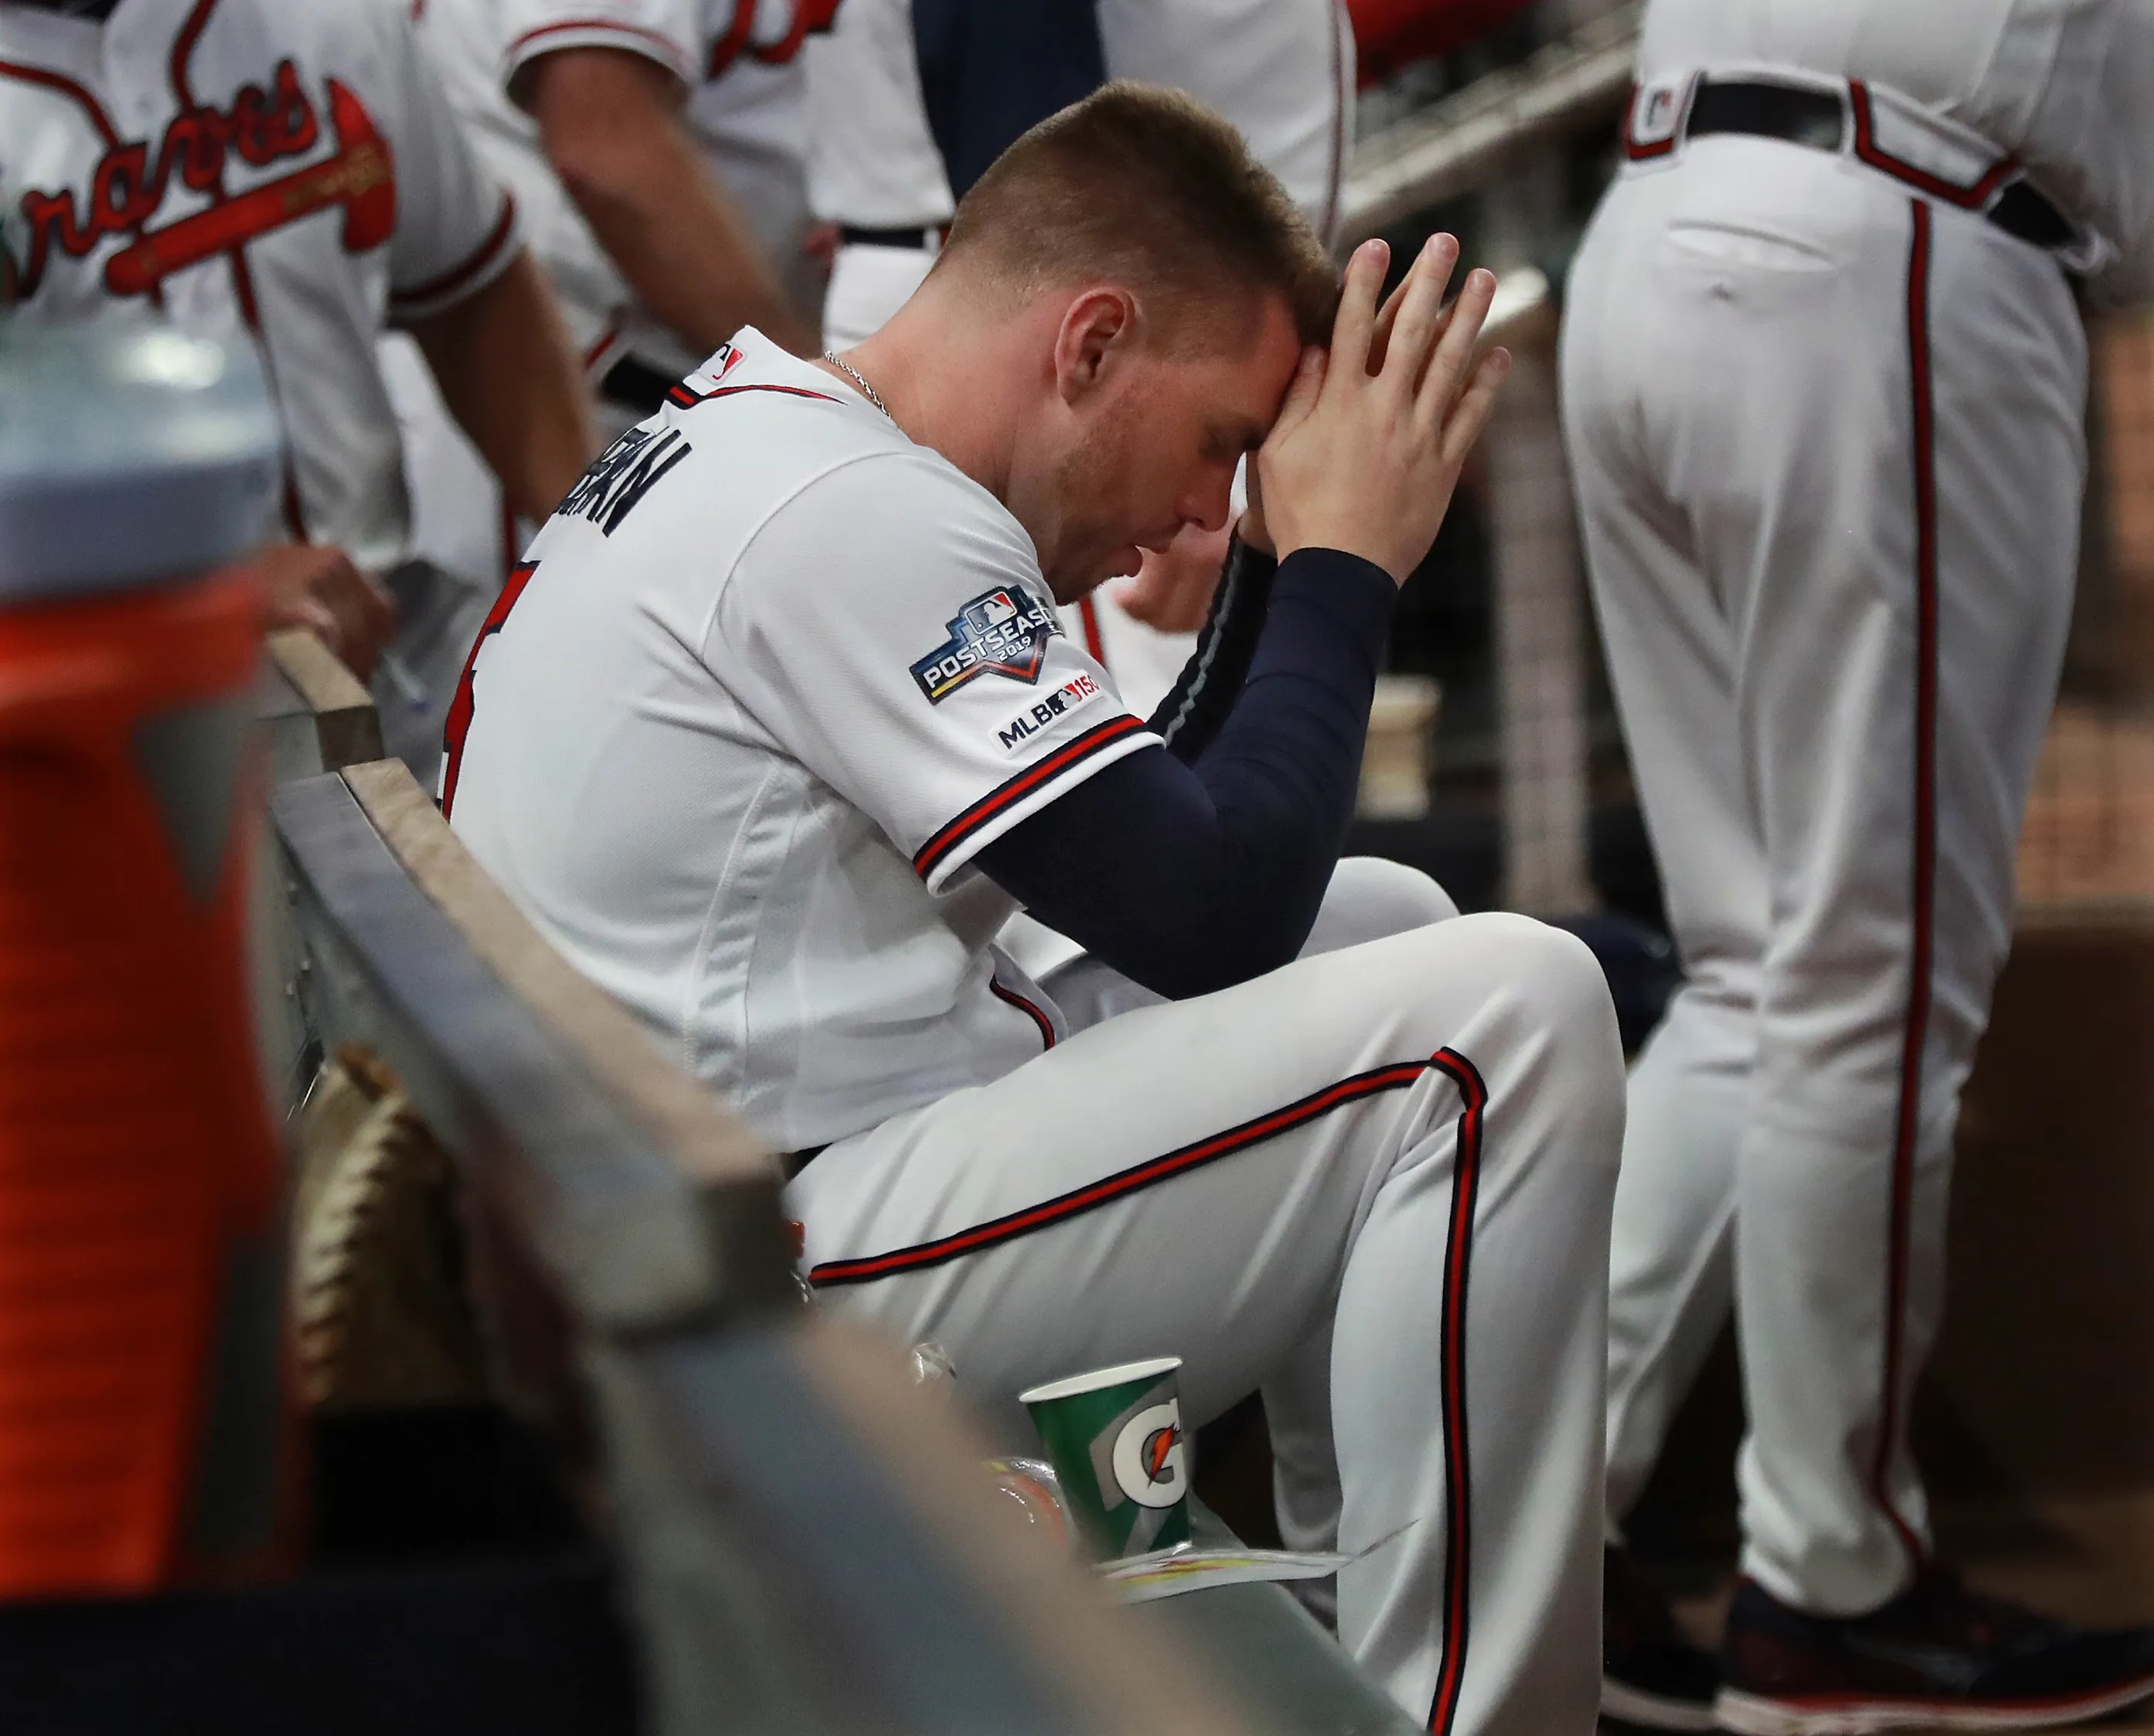 Mlb Playoffs Braves Season Ends With Nightmare Loss Vs